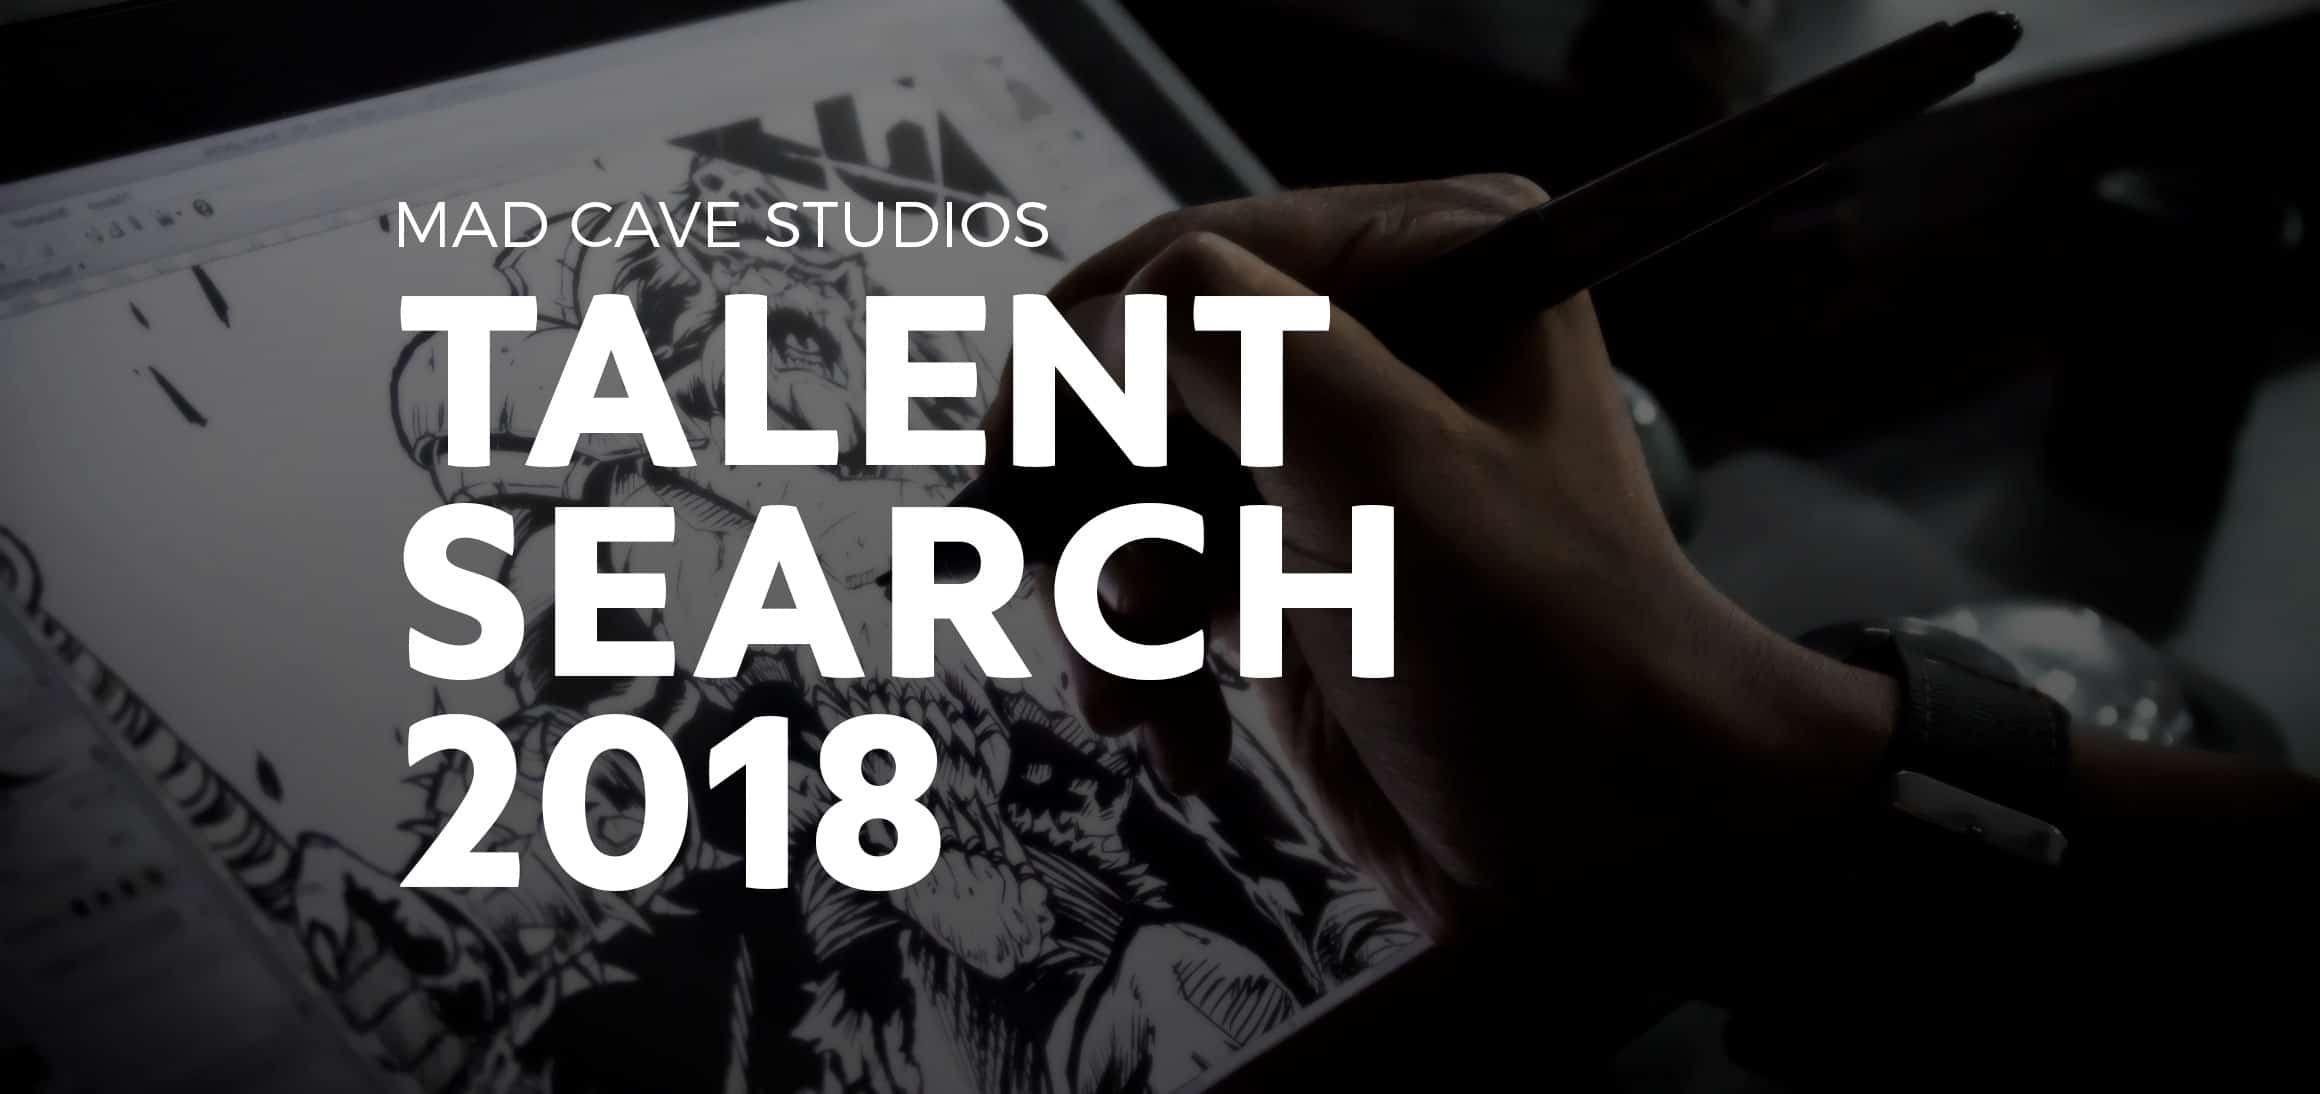 Talent Search Comics - Mad Cave Studios